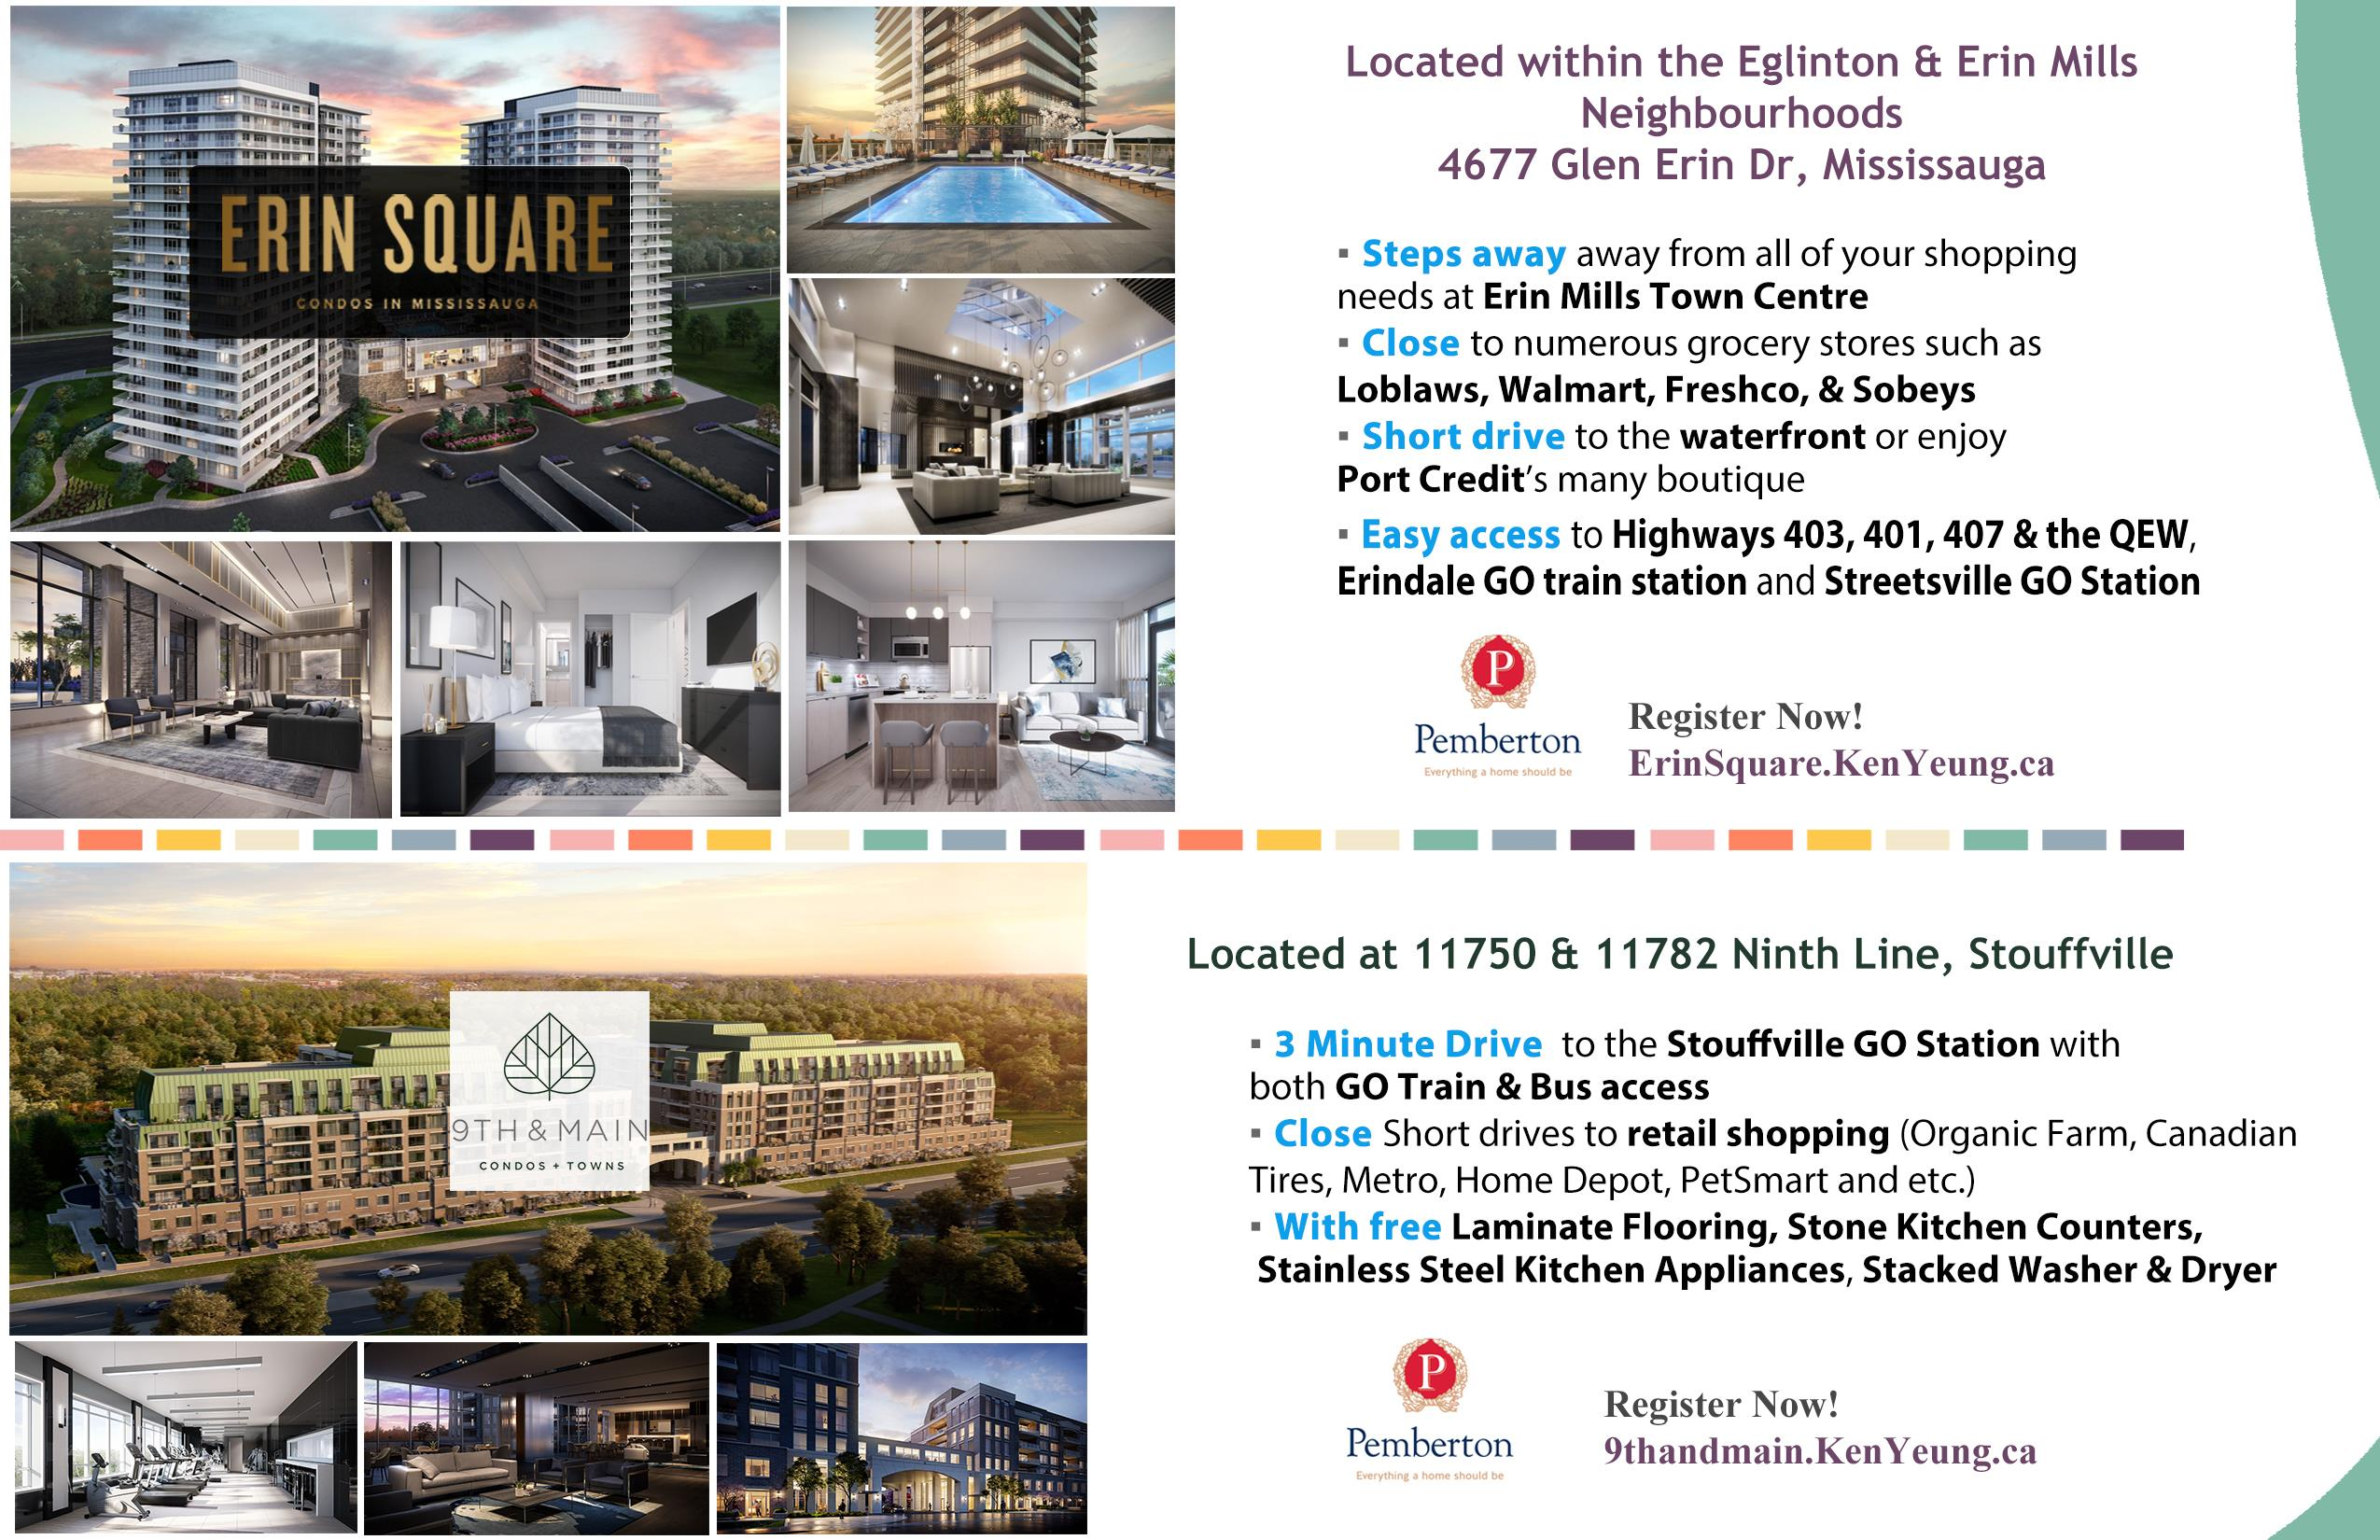 Erin Square + 9th and Main Condos Sales Event